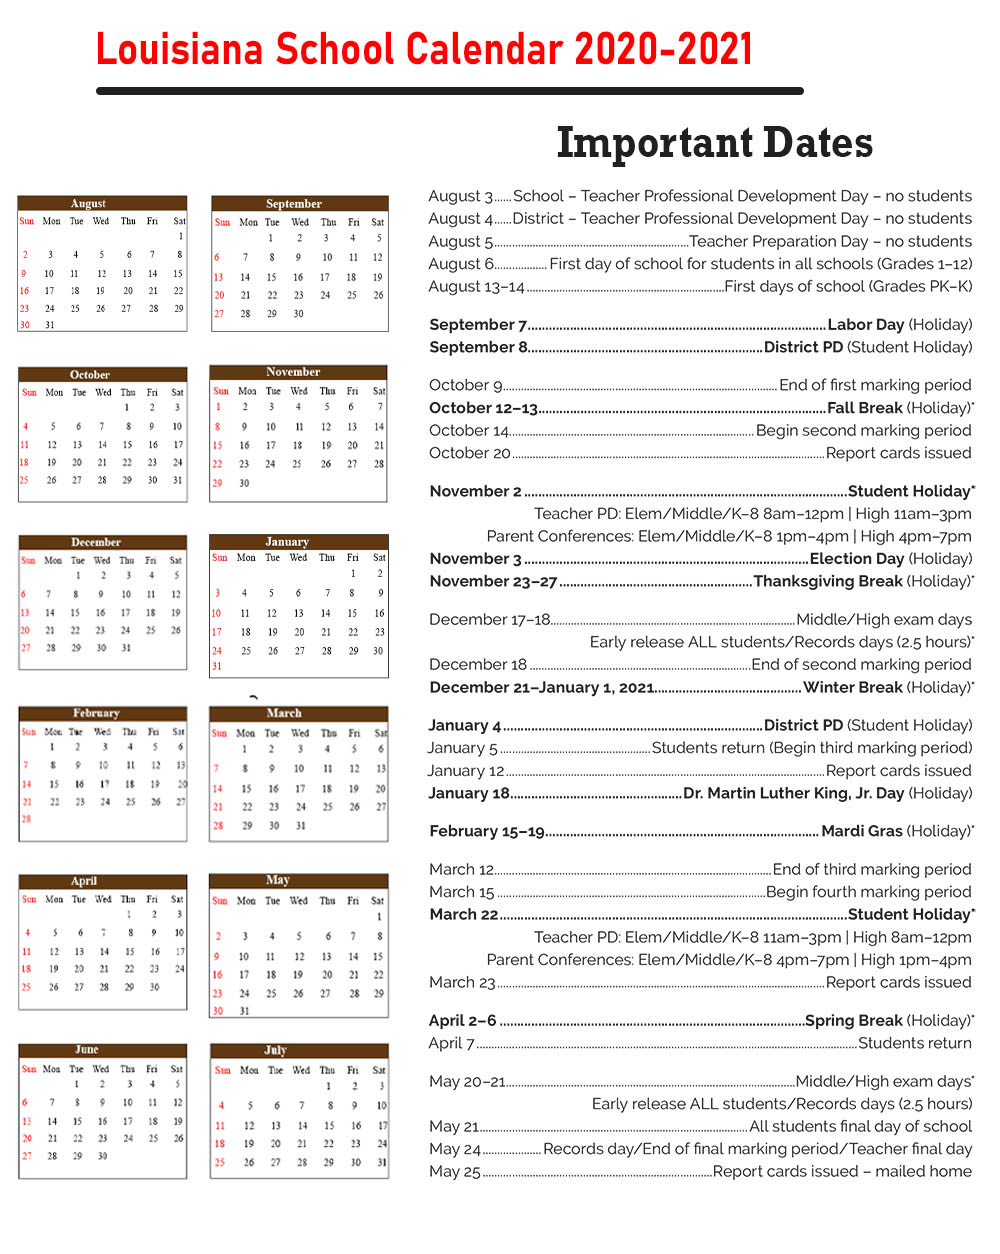 Louisiana School Calendar 2020